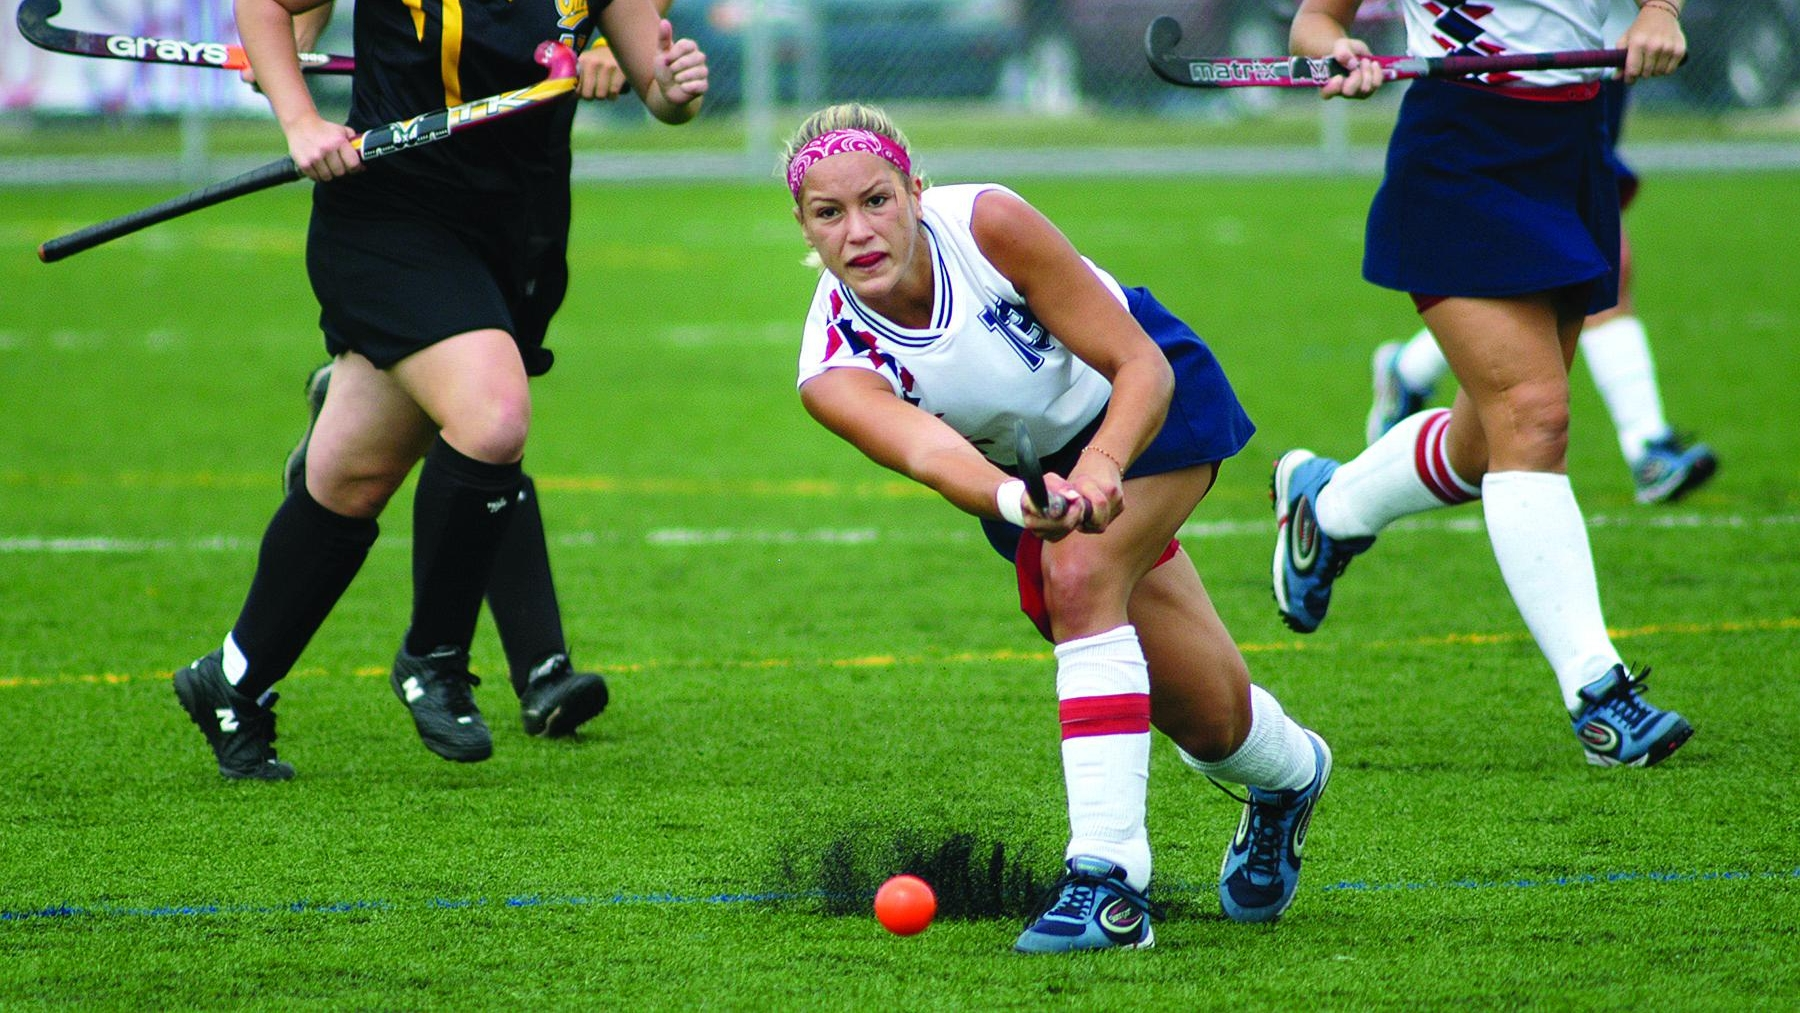 Playing field hockey as a student at Ship.